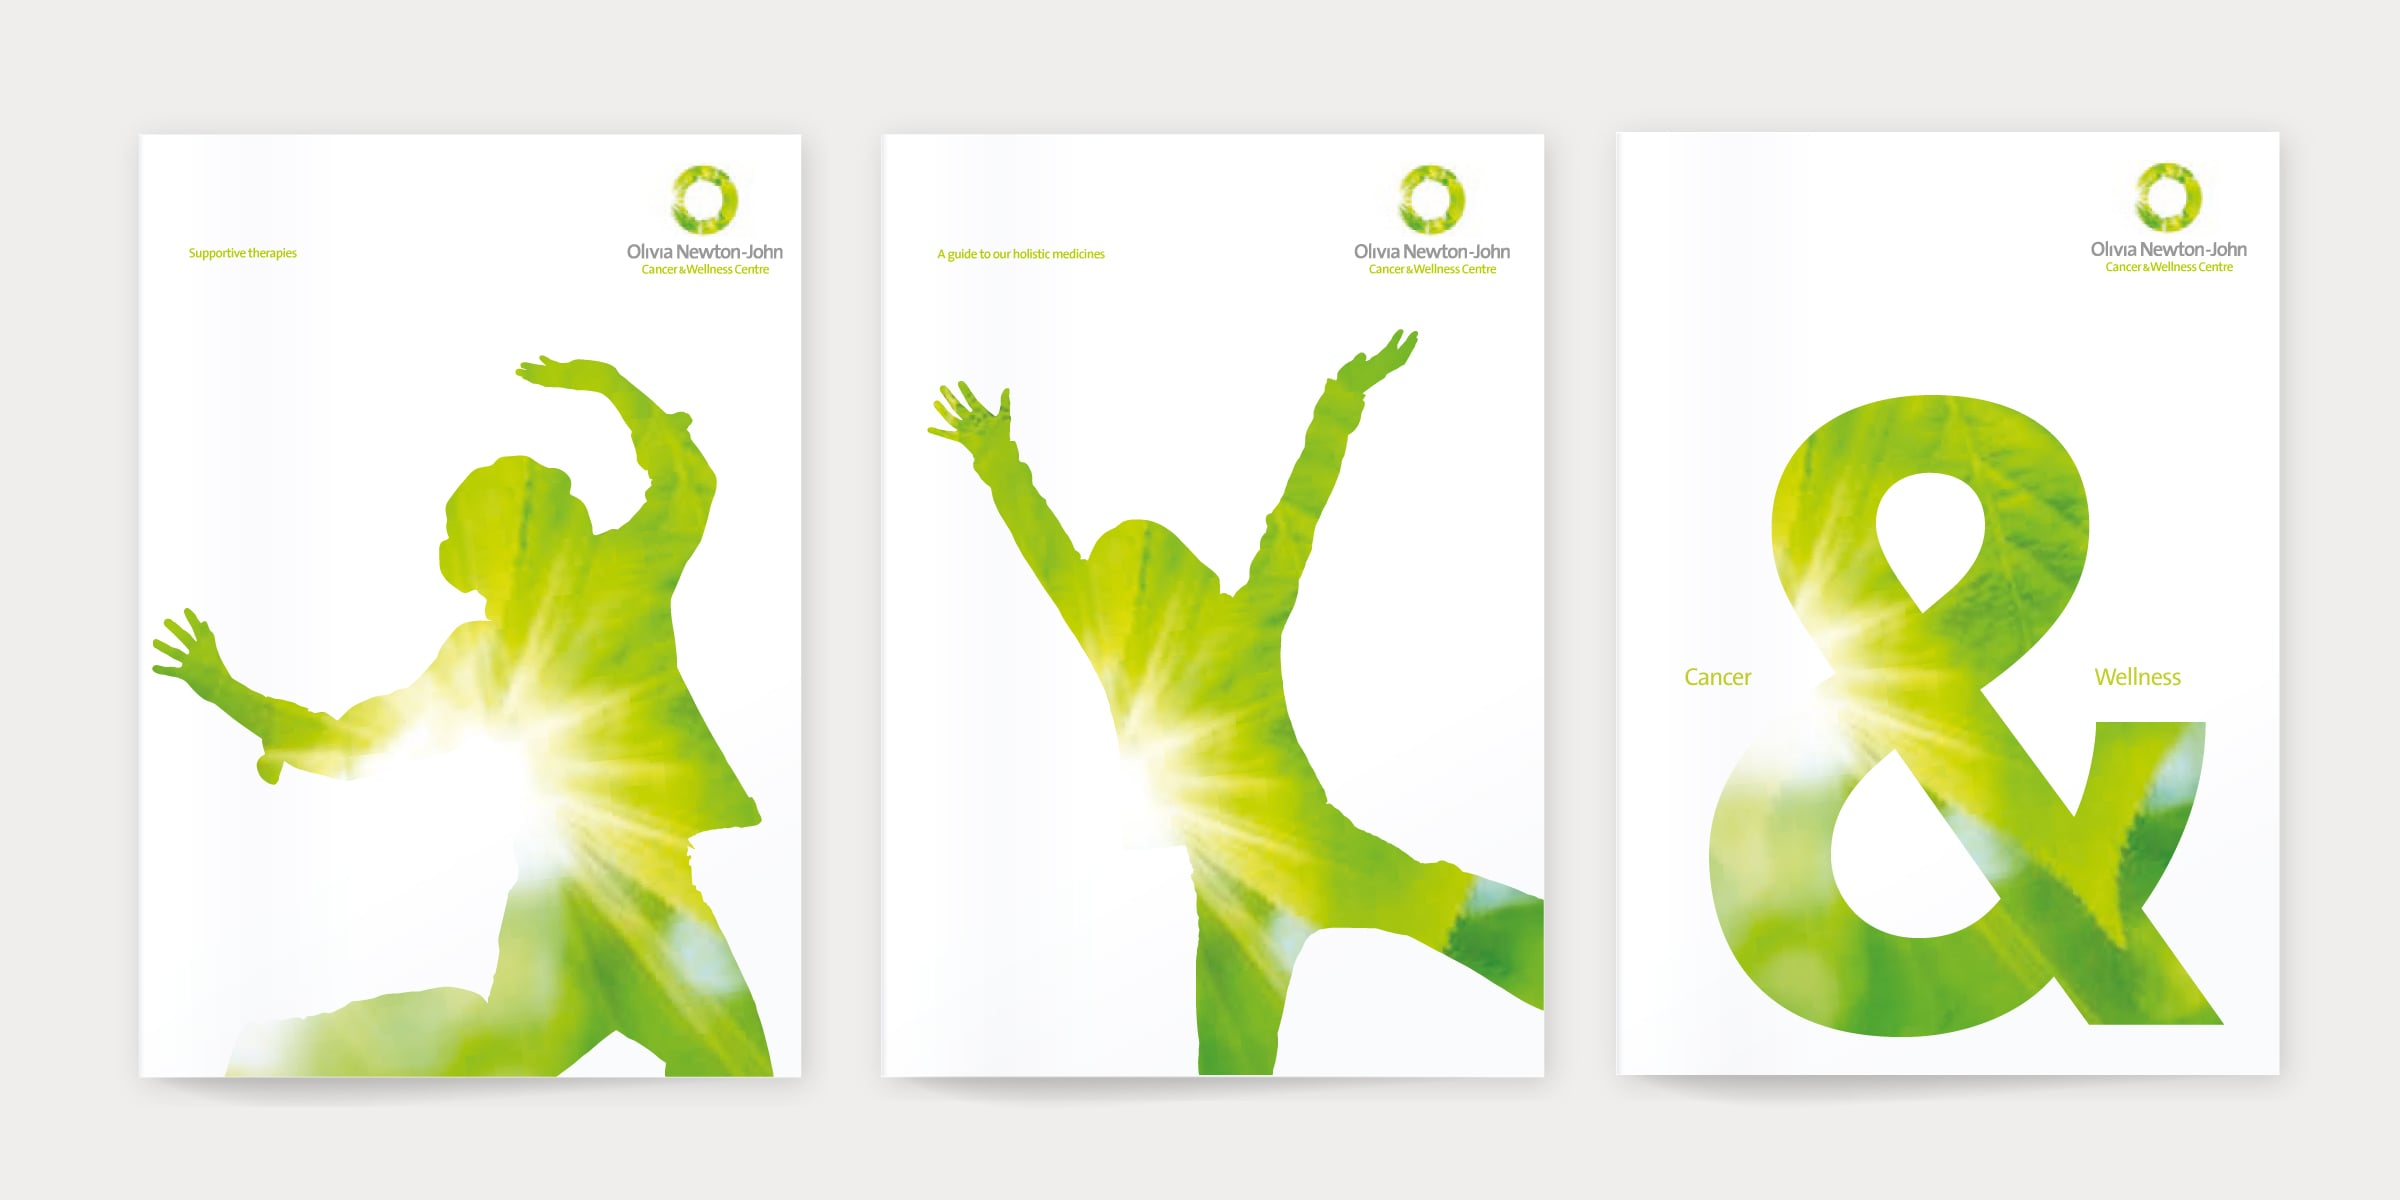 Davidson Branding Corporate Olivia Newton-John Cancer & Wellness Centre Brand Strategy Brand Identity Logo Design Brochure